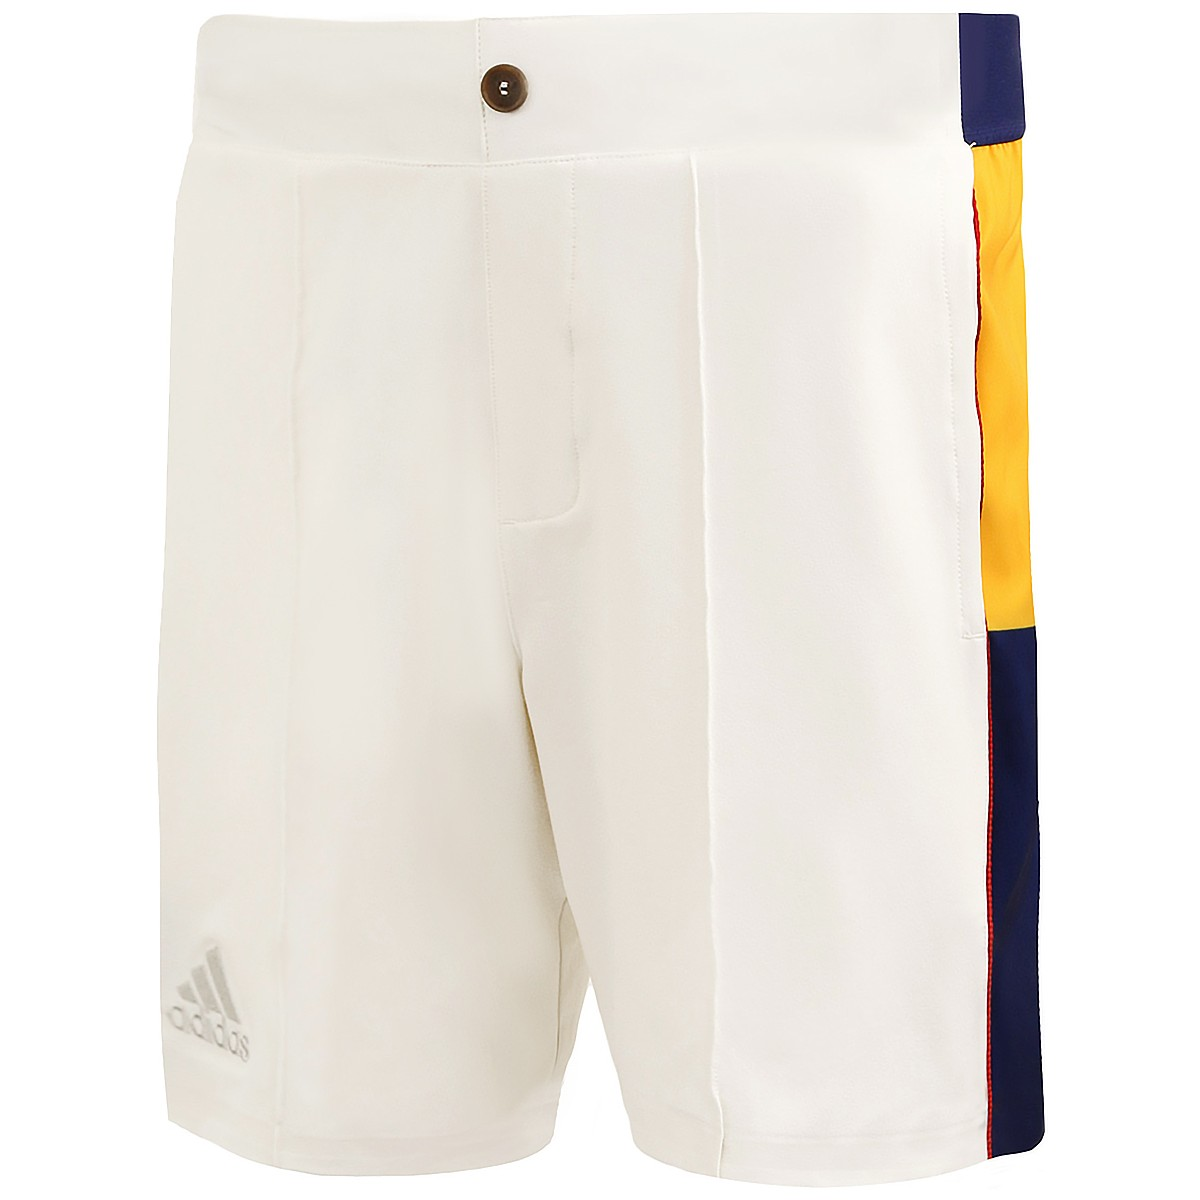 ADIDAS JUNIOR PHARRELL WILLIAMS SHORTS